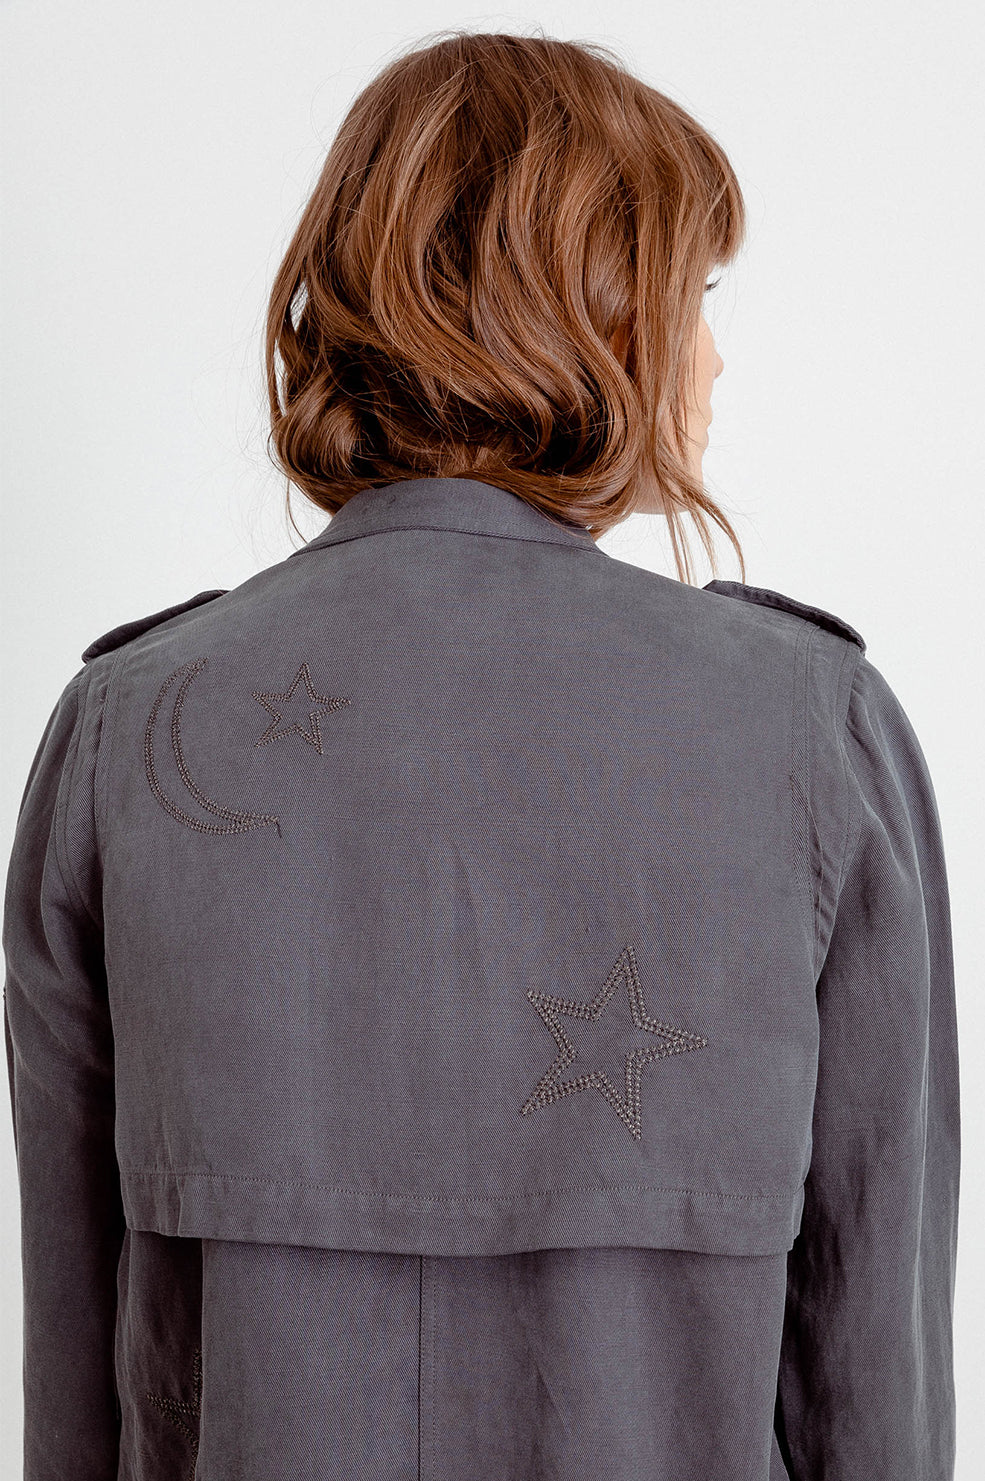 ROWEN - DARK GREY WITH STAR EMBROIDERY